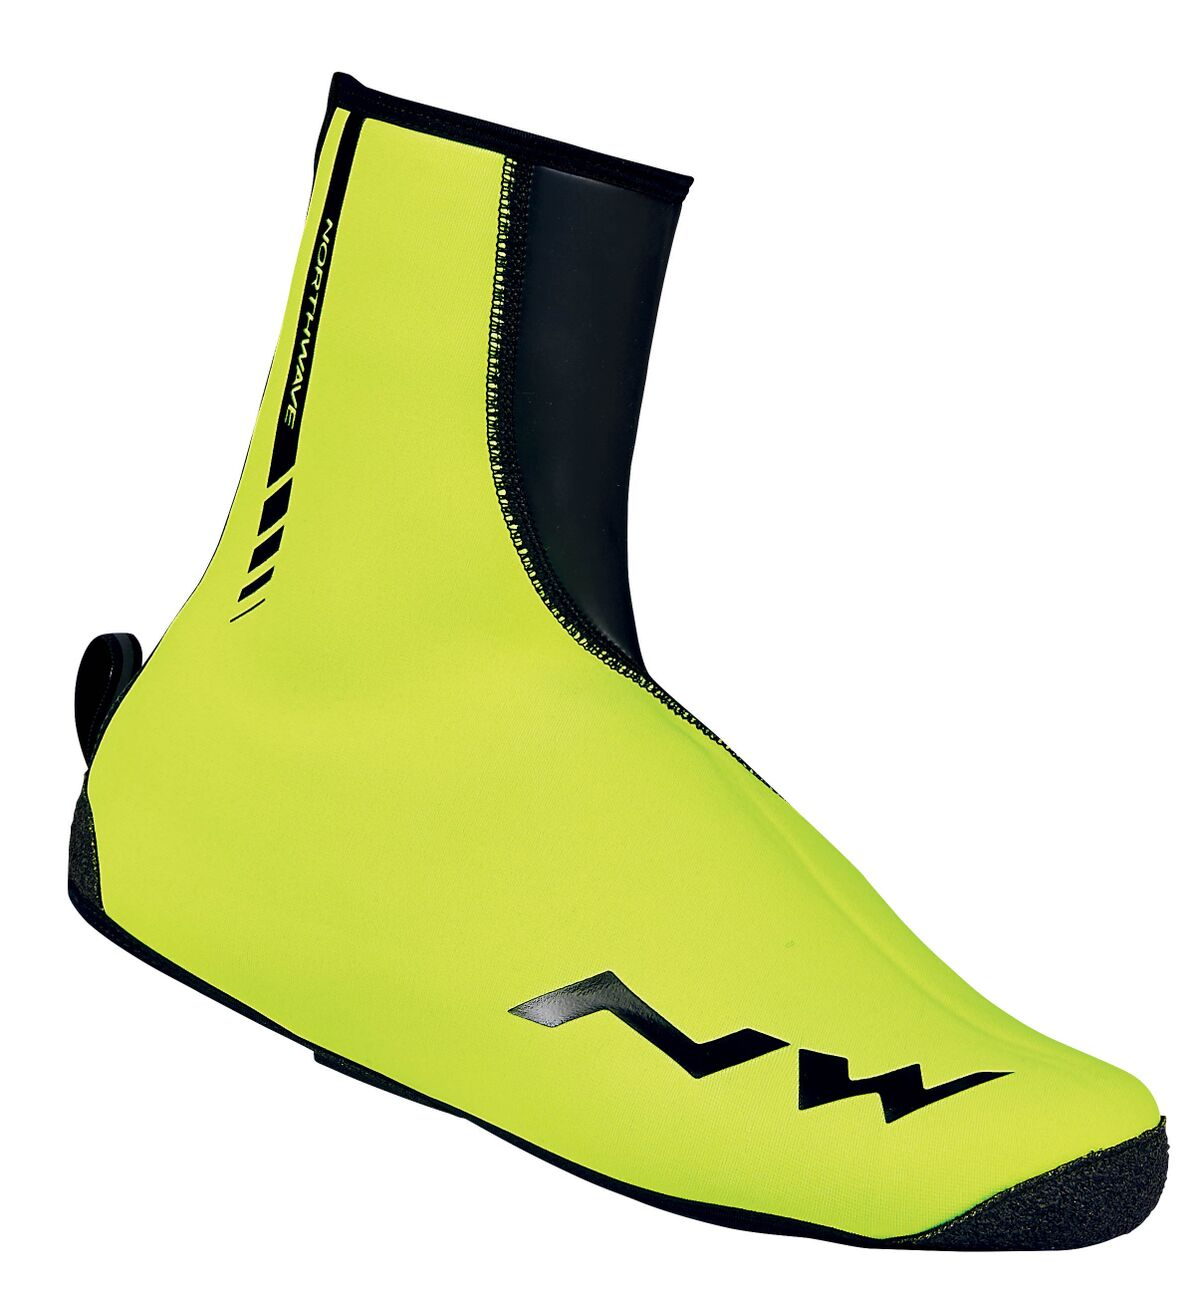 Copriscarpe Ciclismo Northwave Sonic 2 Shoe Cover  YELLOW FLUO-BLACK